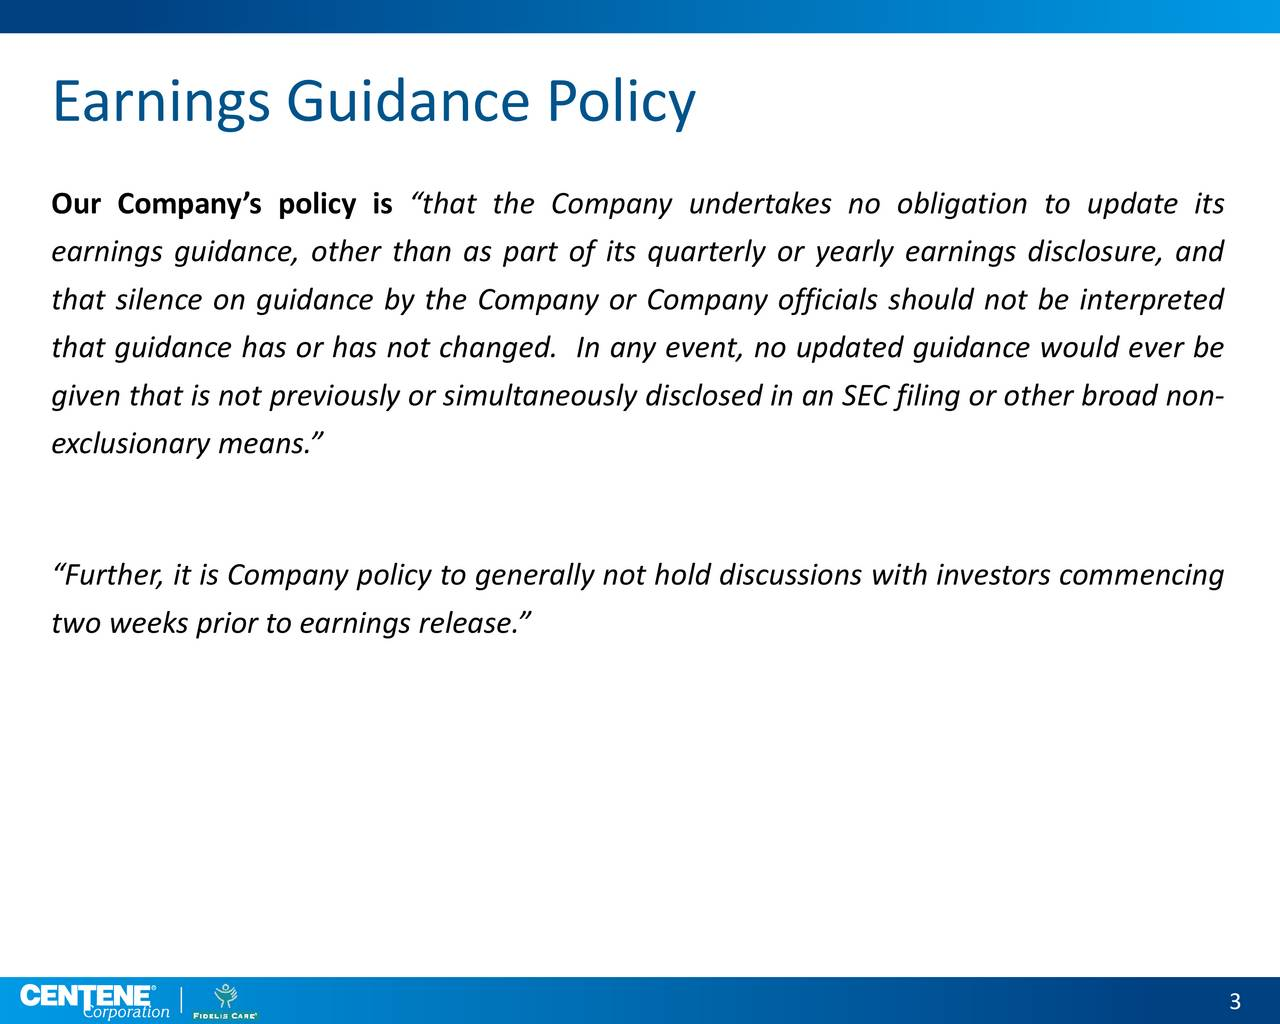 Our Companys policy is that the Company undertakes no obligation to update its earnings guidance, other than as part of its quarterly or yearly earnings disclosure, and that silence on guidance by the Company or Company officials should not be interpreted that guidance has or has not changed. In any event, no updated guidance would ever be given that is not previously or simultaneously disclosed in an SEC filing or other broad non- exclusionary means. Further, it is Company policy to generally not hold discussions with investors commencing two weeks prior to earnings release.